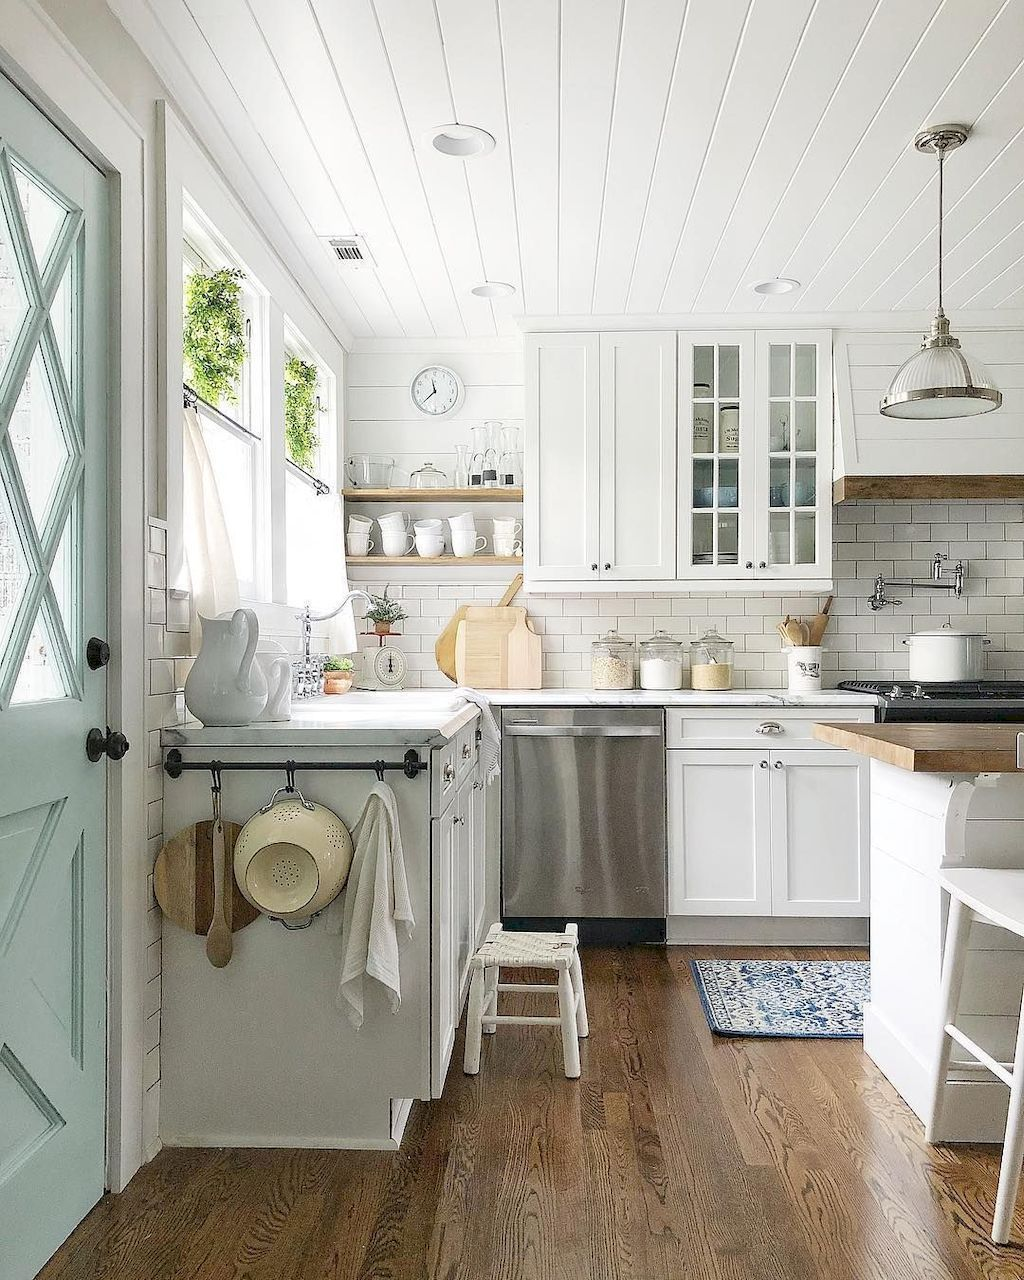 Best Rustic Farmhouse Kitchen Cabinets In List 54 Oneonroom Farmhouse Style Kitchen Cabinets Farmhouse Kitchen Decor Kitchen Style